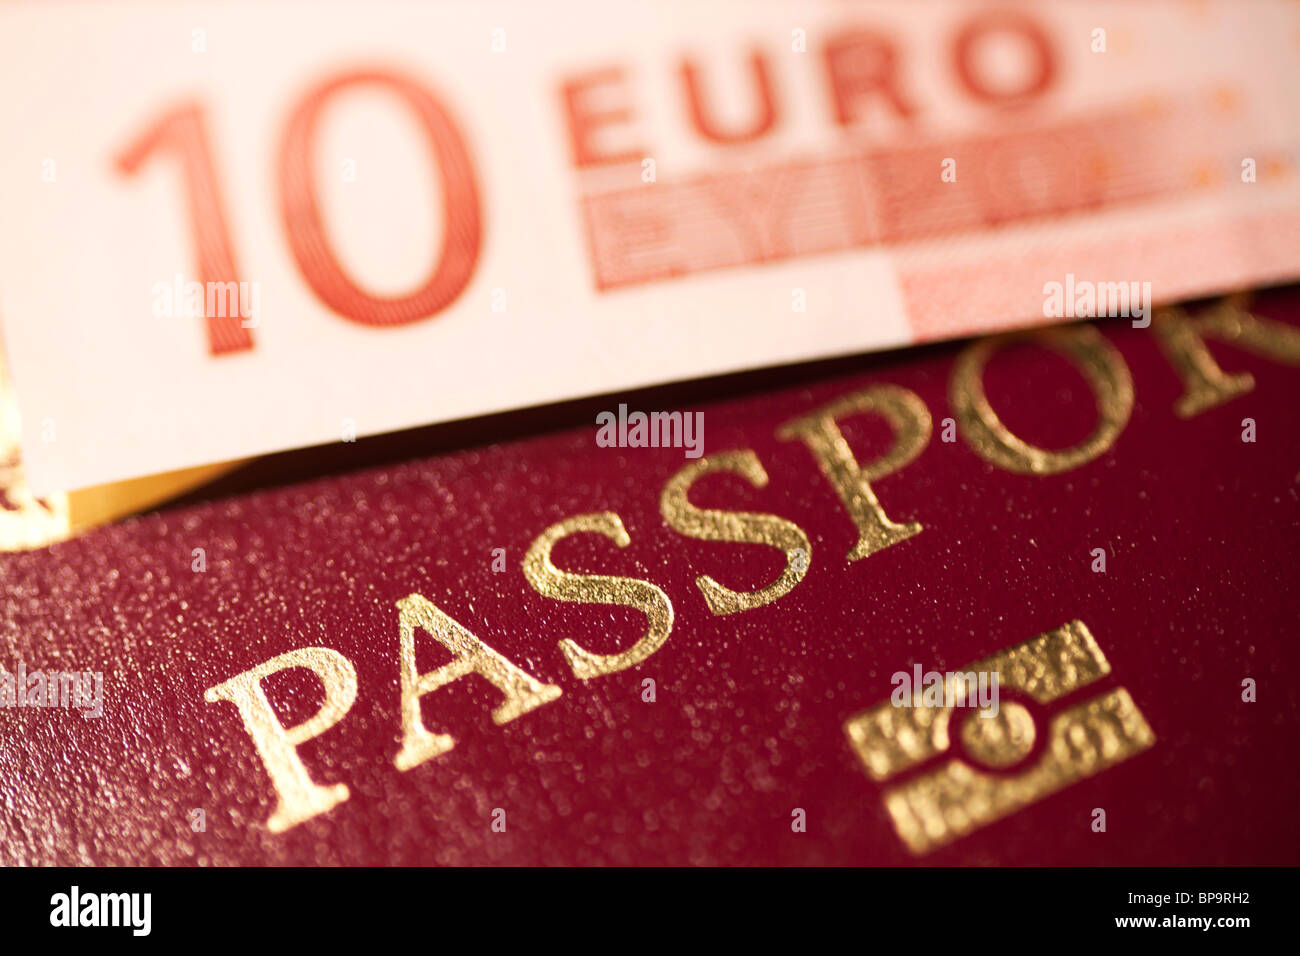 Passport with a 10 euro note on top - Stock Image